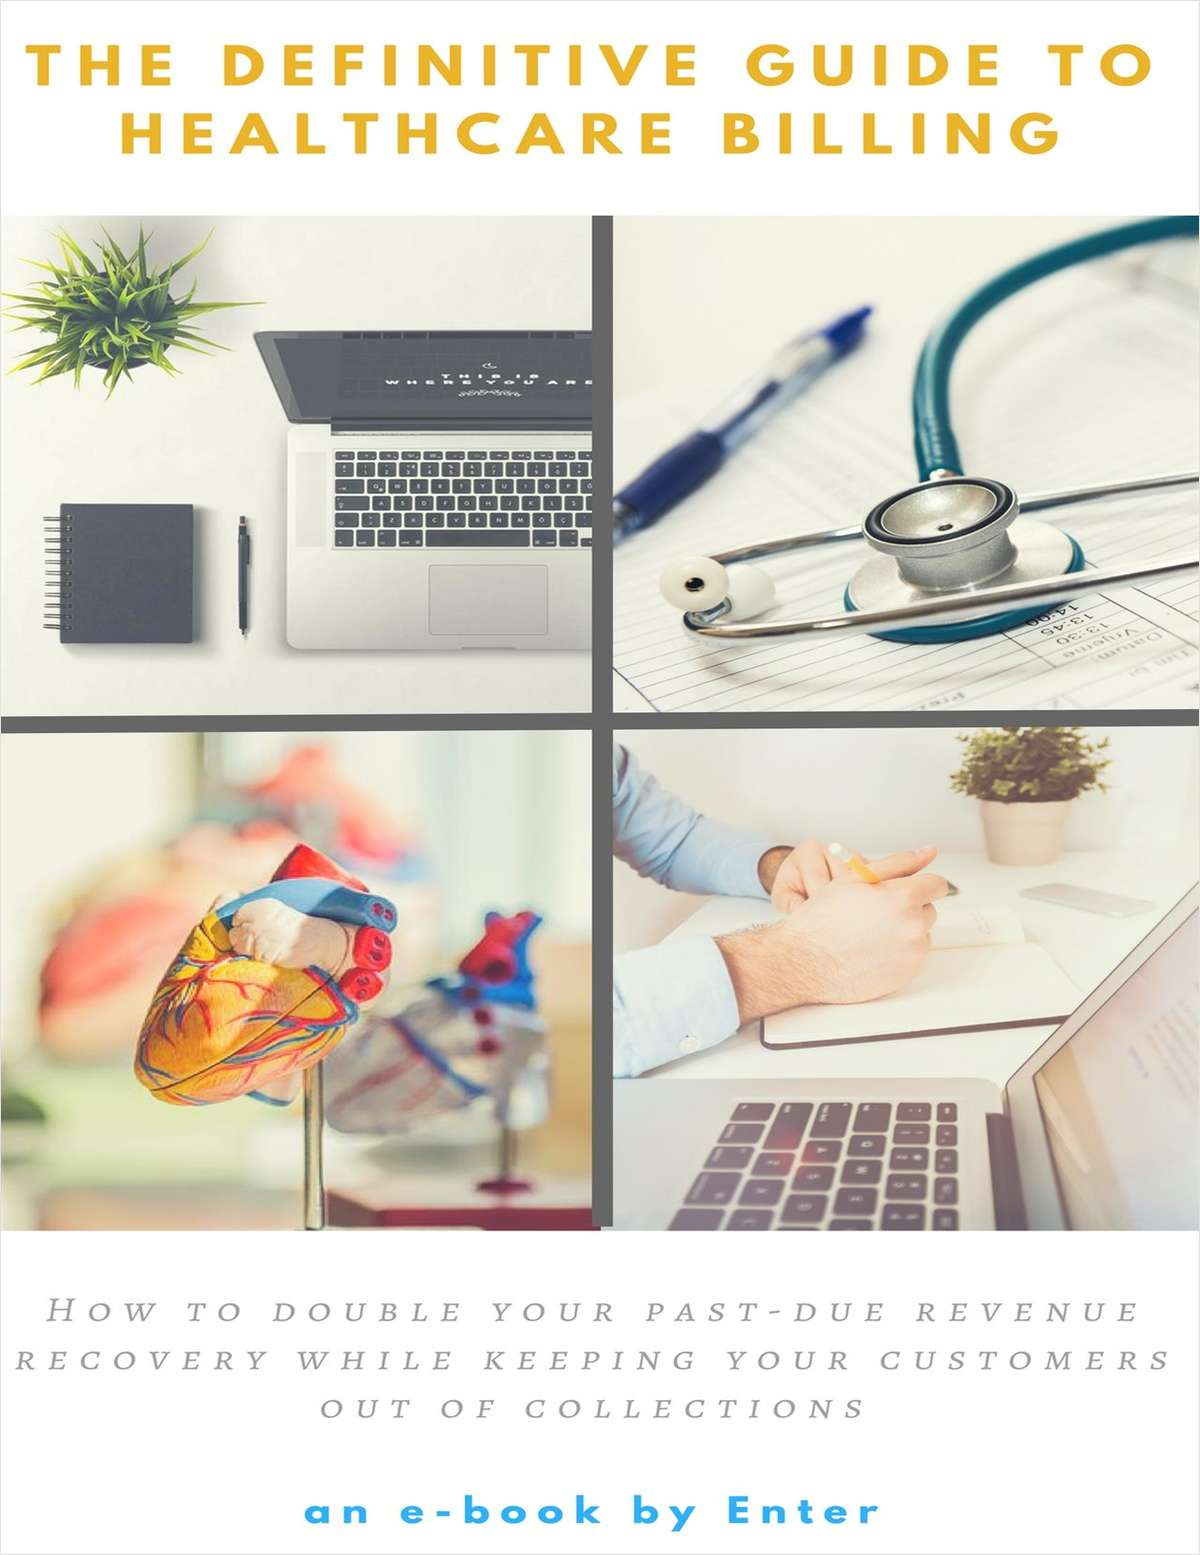 The Definitive Guide to Healthcare Billing